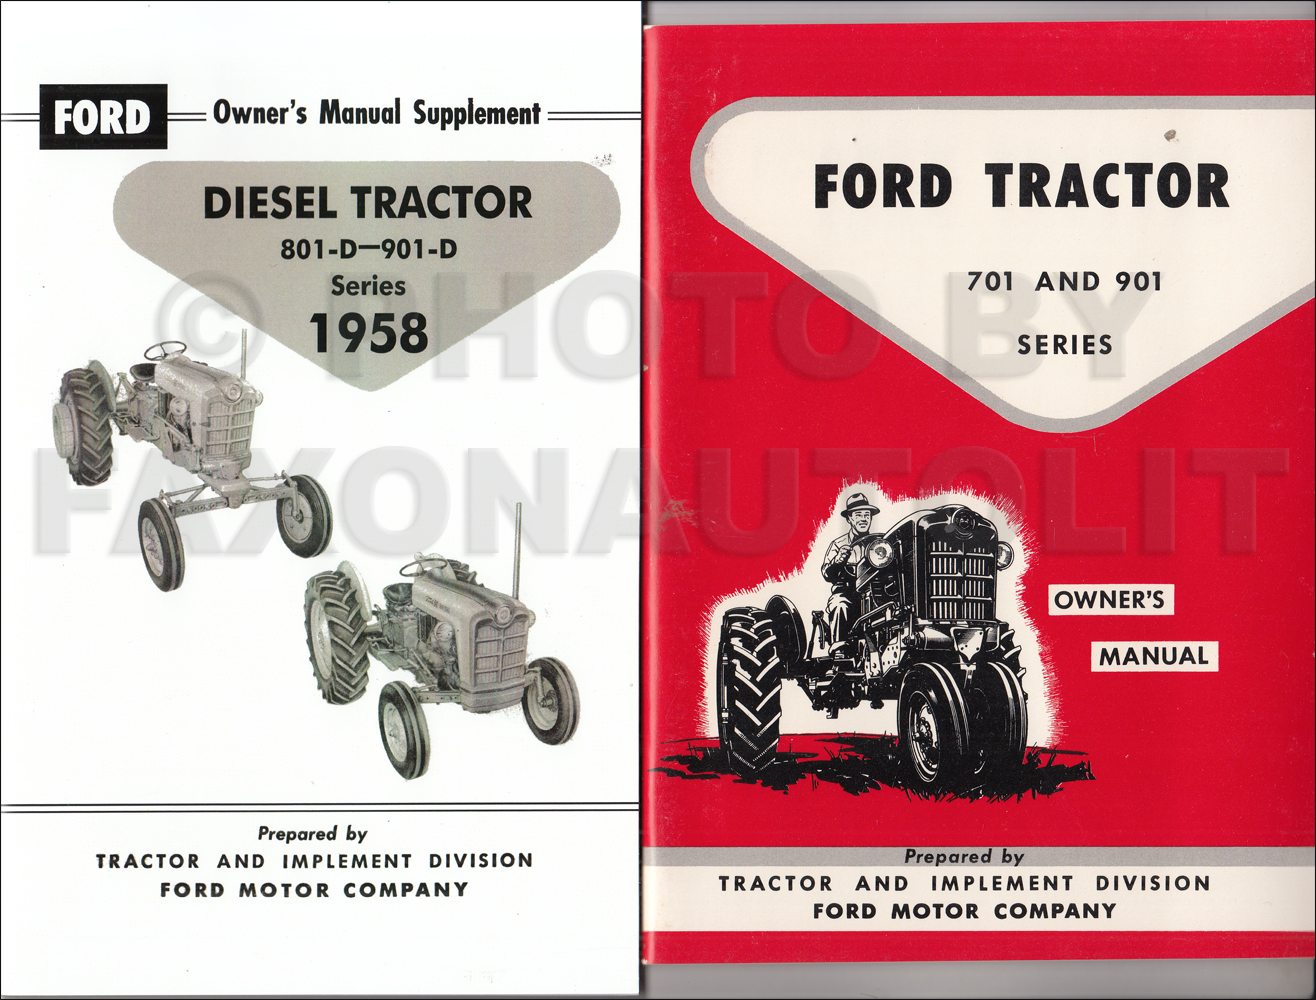 1958-1962 Ford 701 & 901 Series Tractor Diesel Owner's Manual Set Reprint